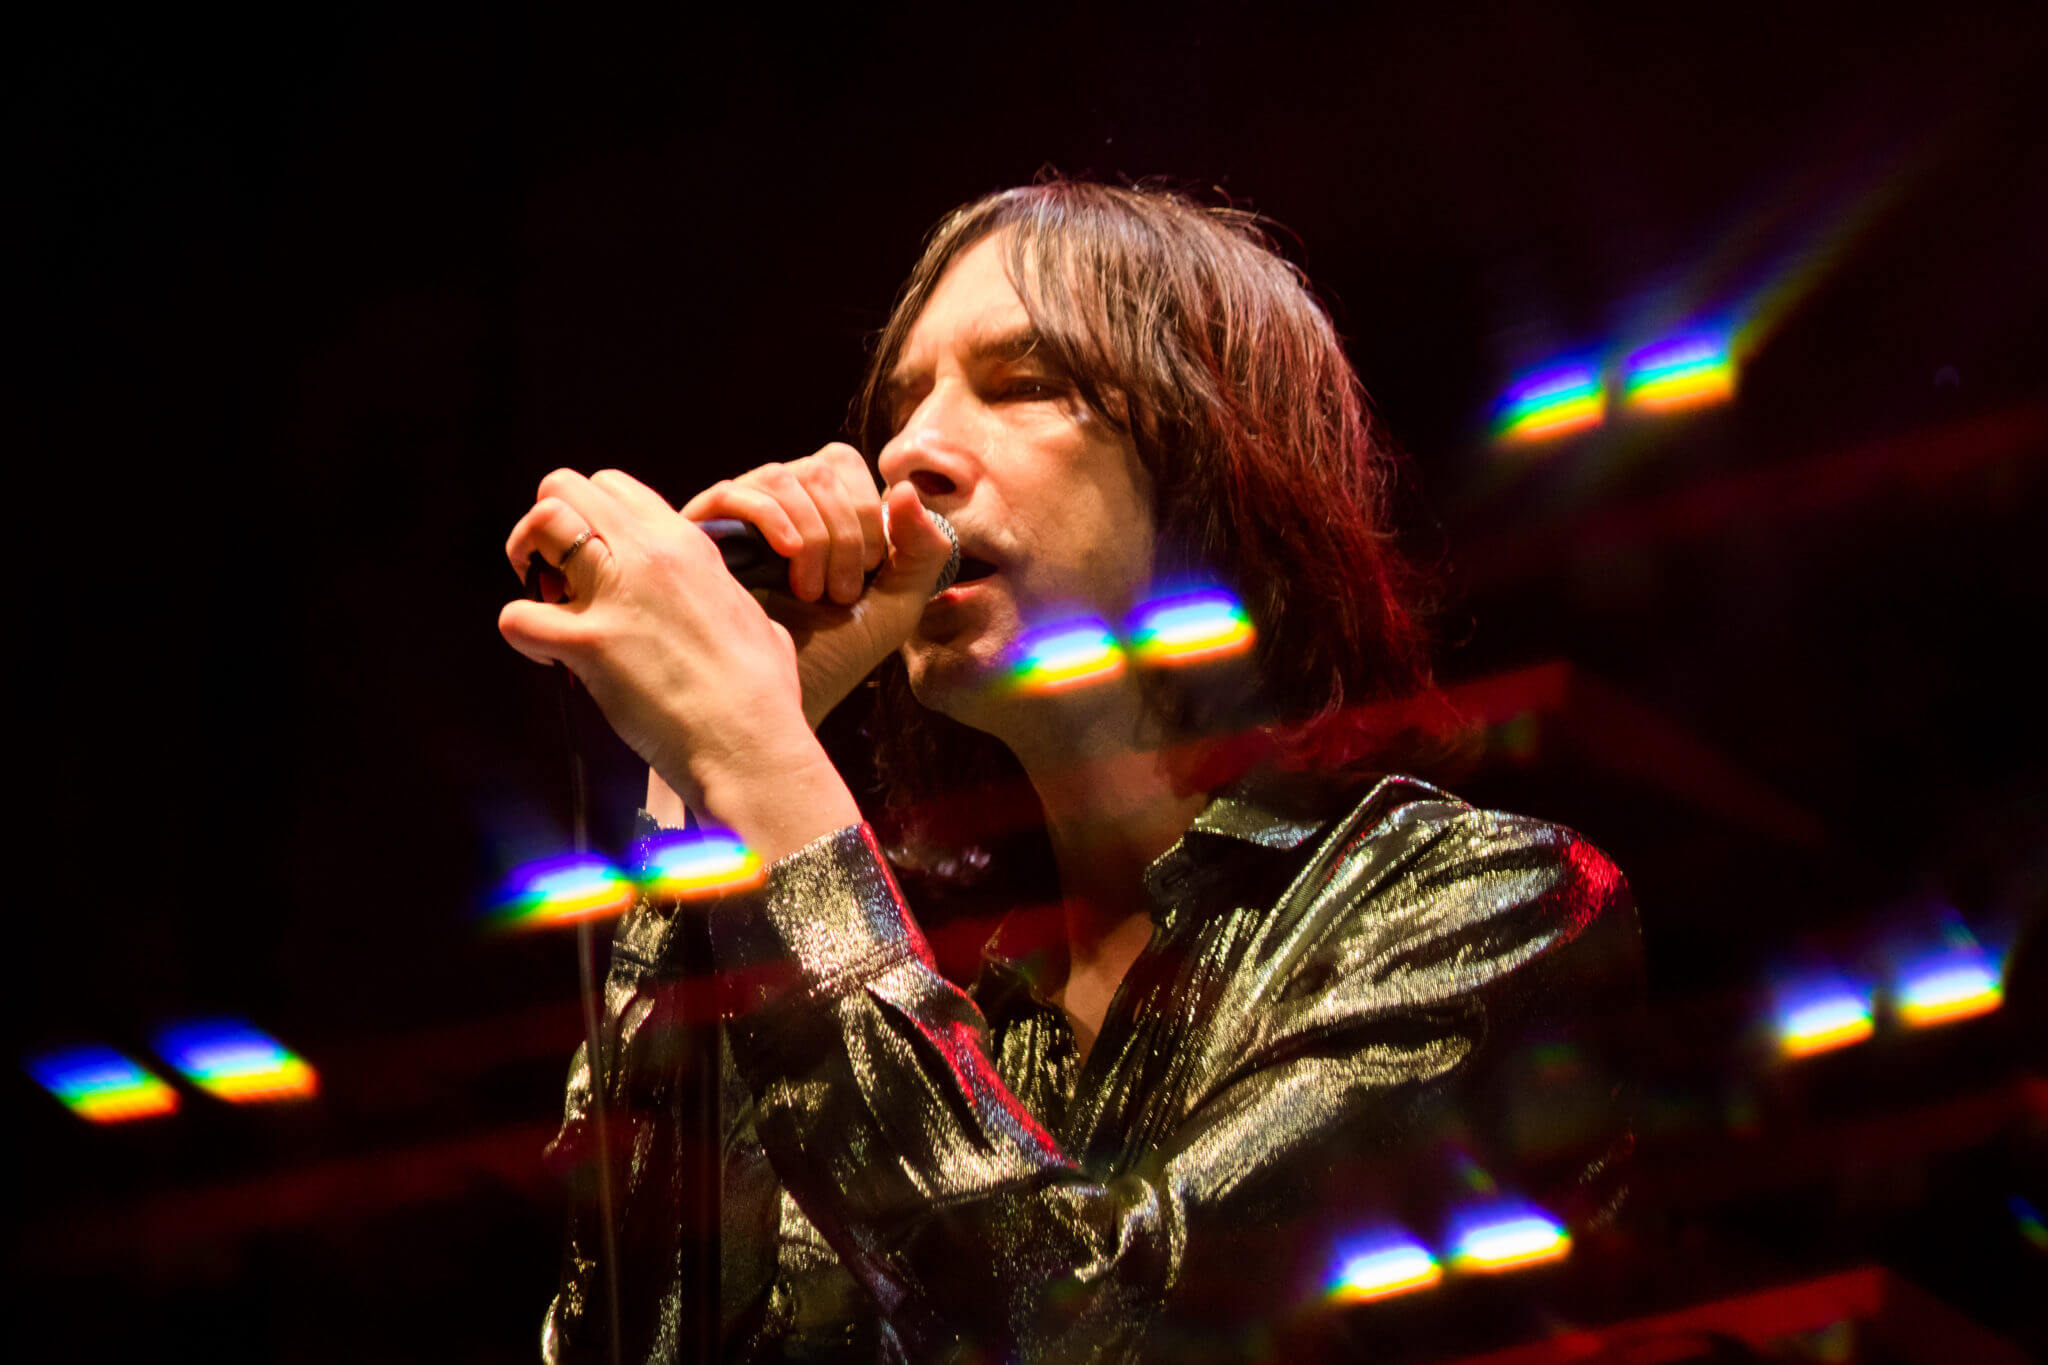 Primal Scream en Chile: Una irresistible excursión sonora